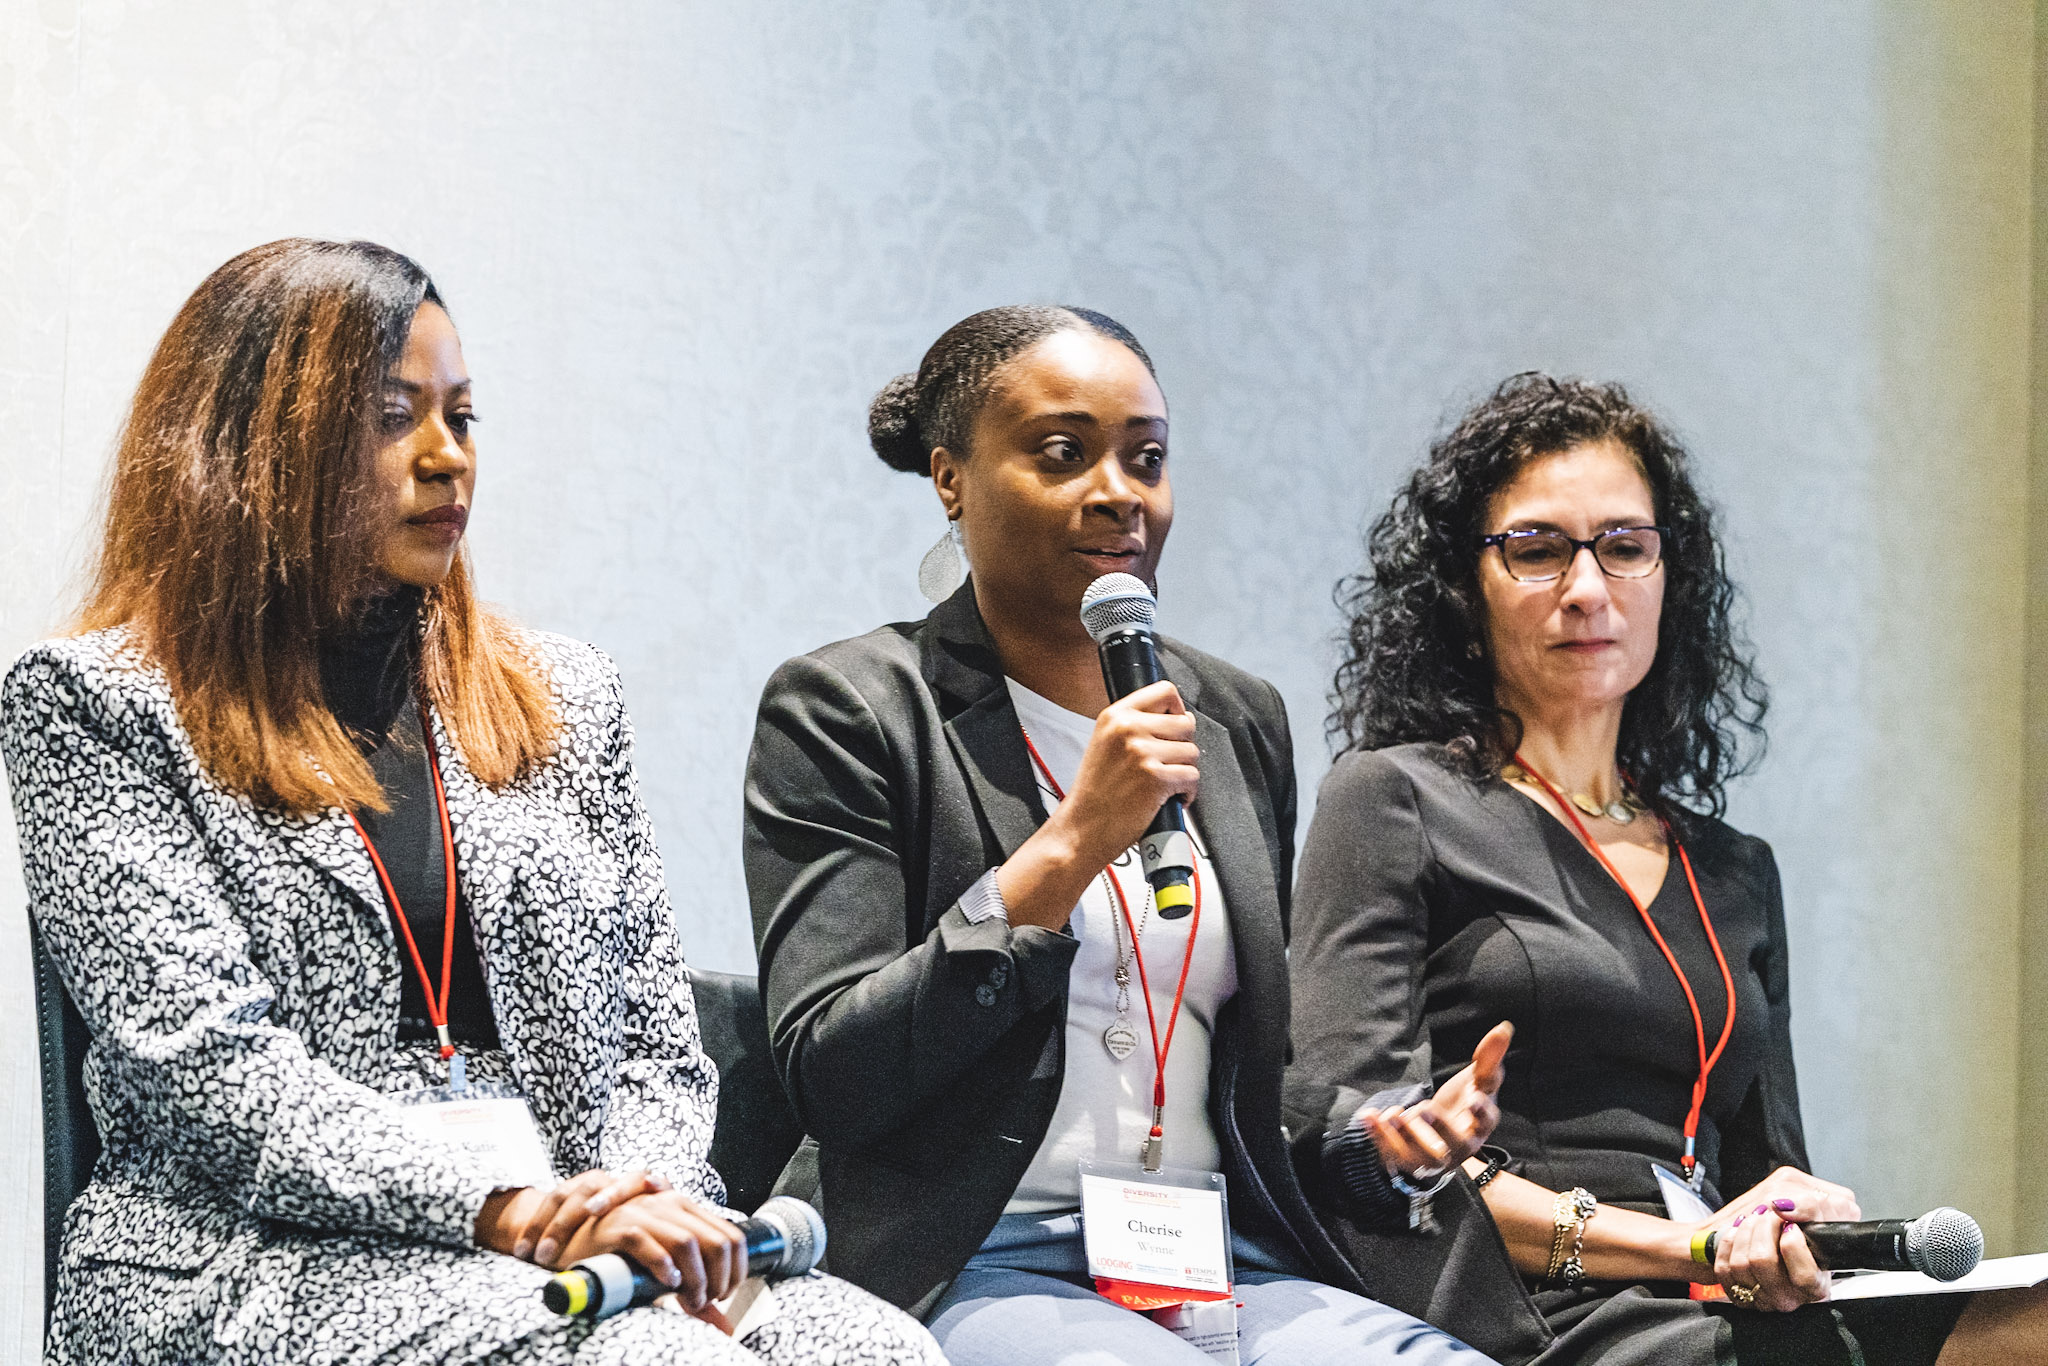 2019 Philadelphia Diversity & Inclusion Conference-107796-March 26, 2019105.jpg